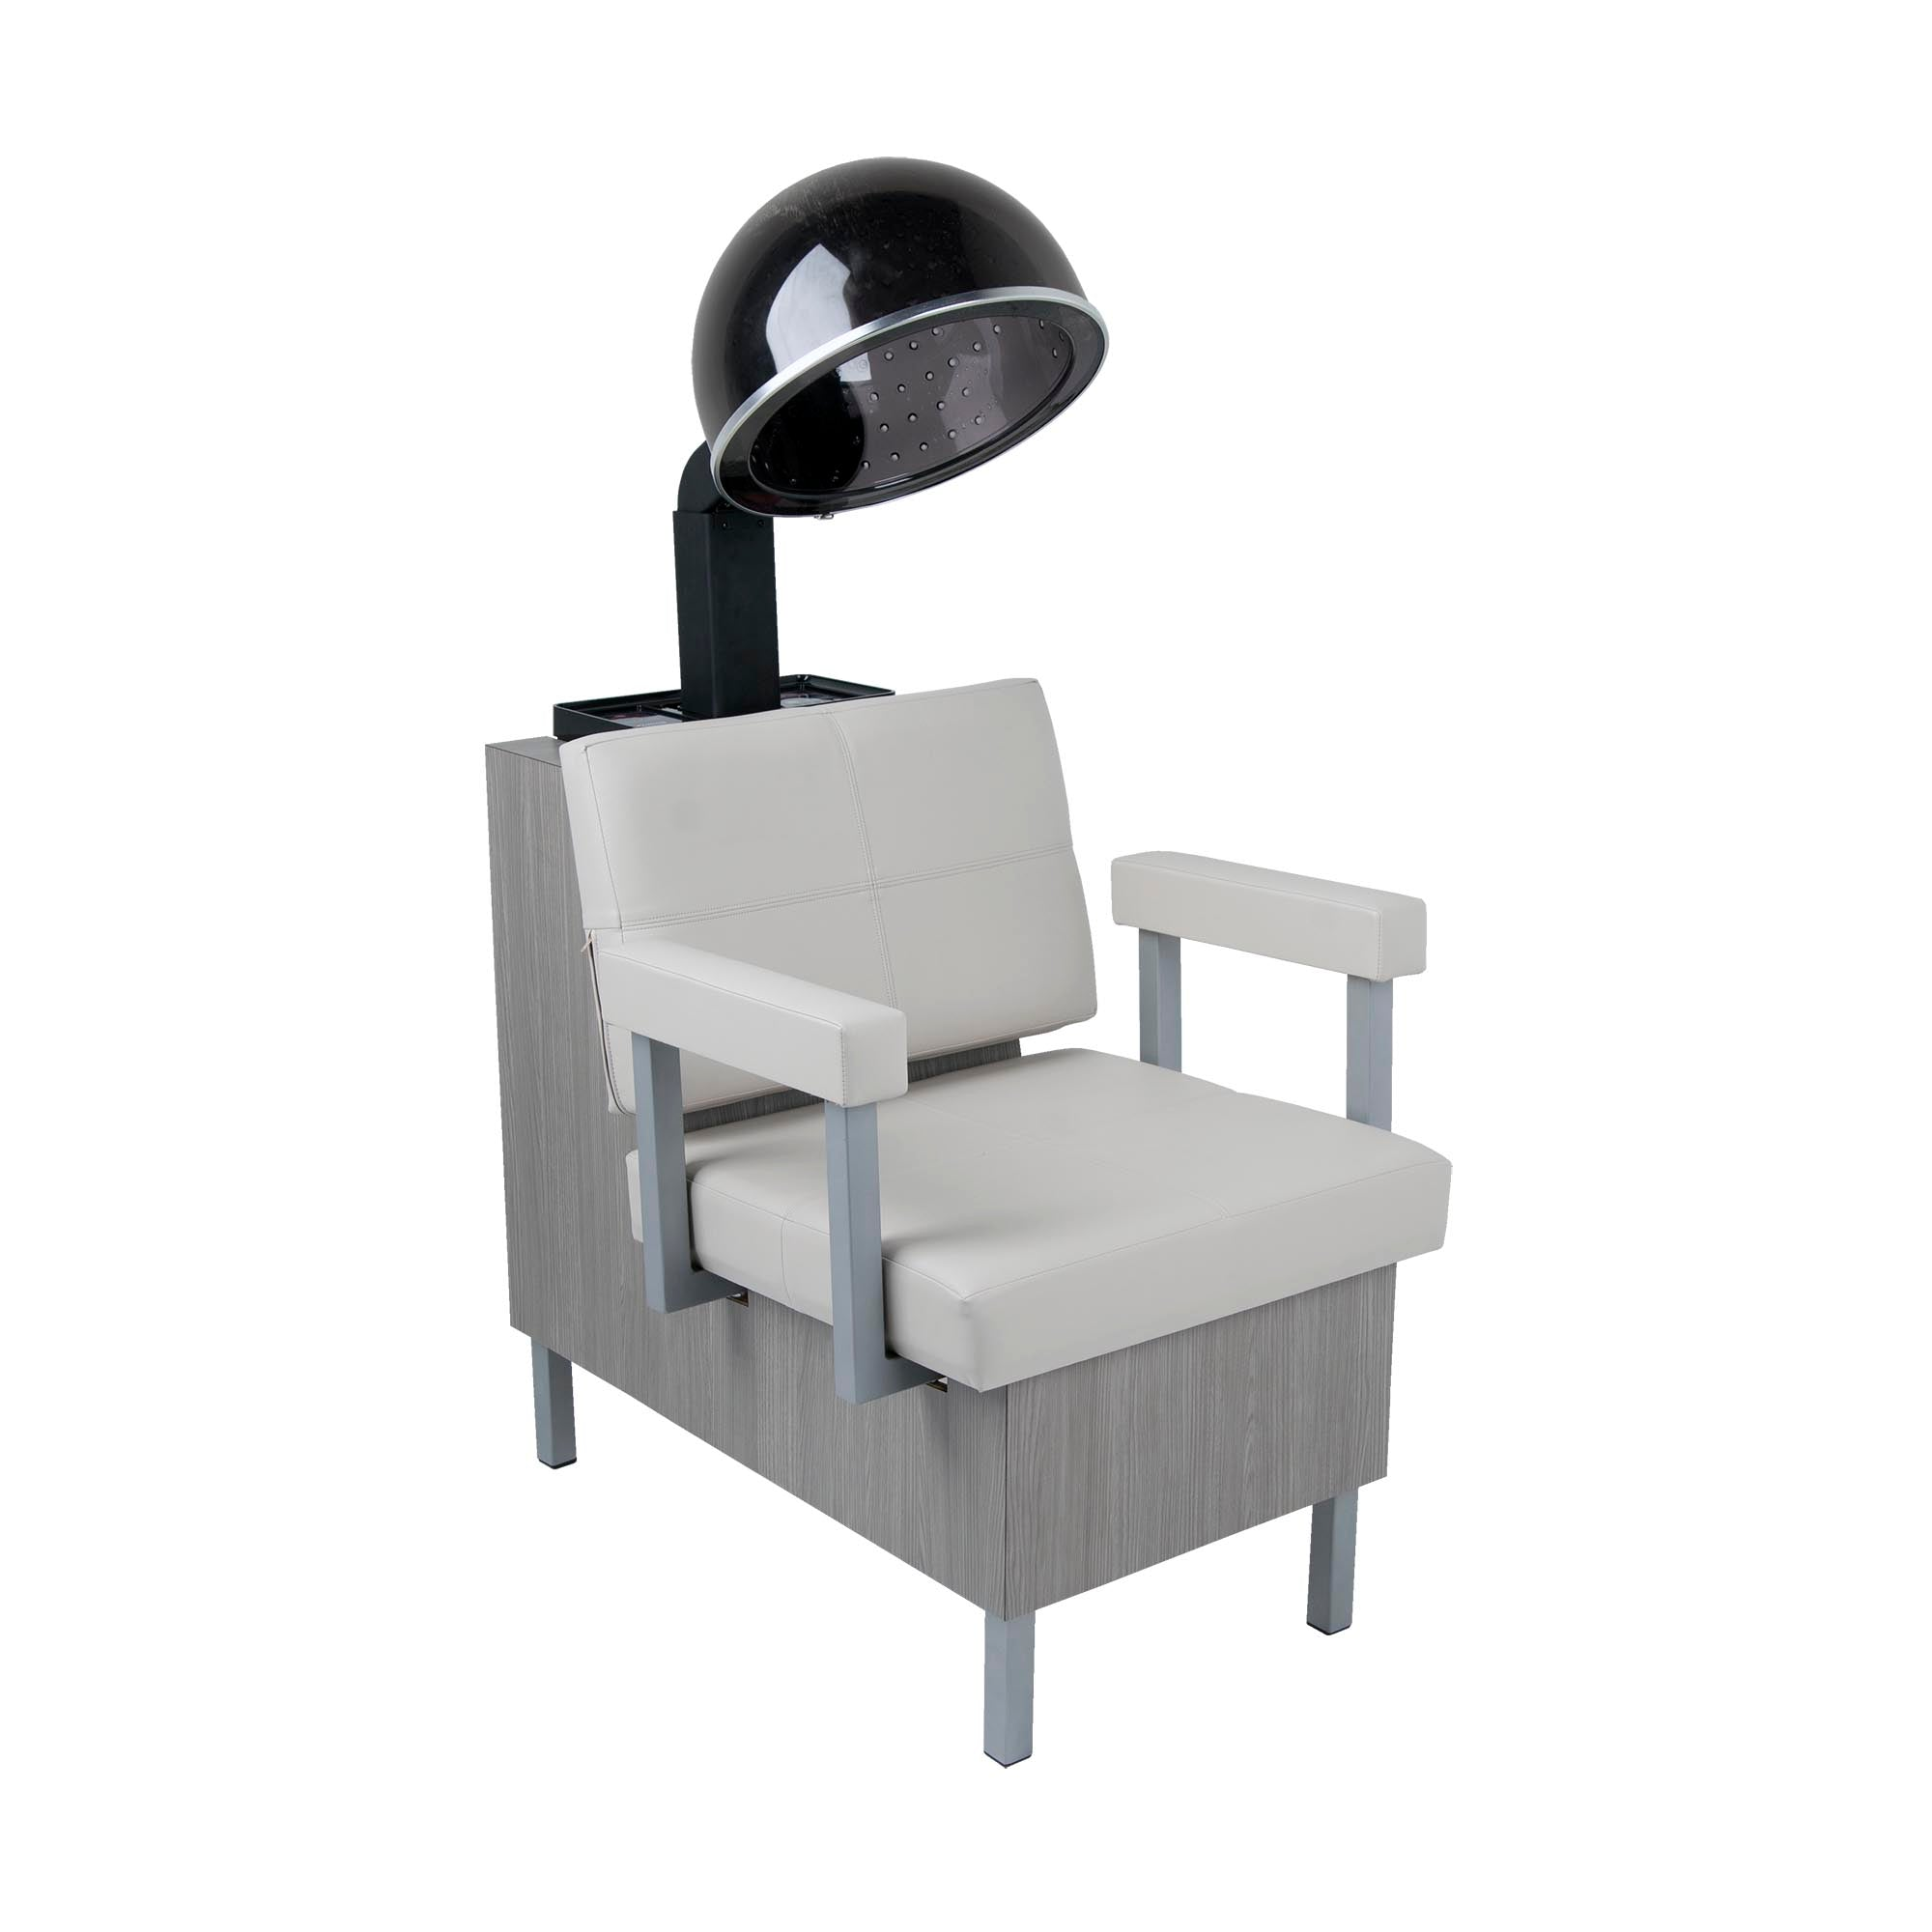 Incredible Quarta Dryer Chair Caraccident5 Cool Chair Designs And Ideas Caraccident5Info